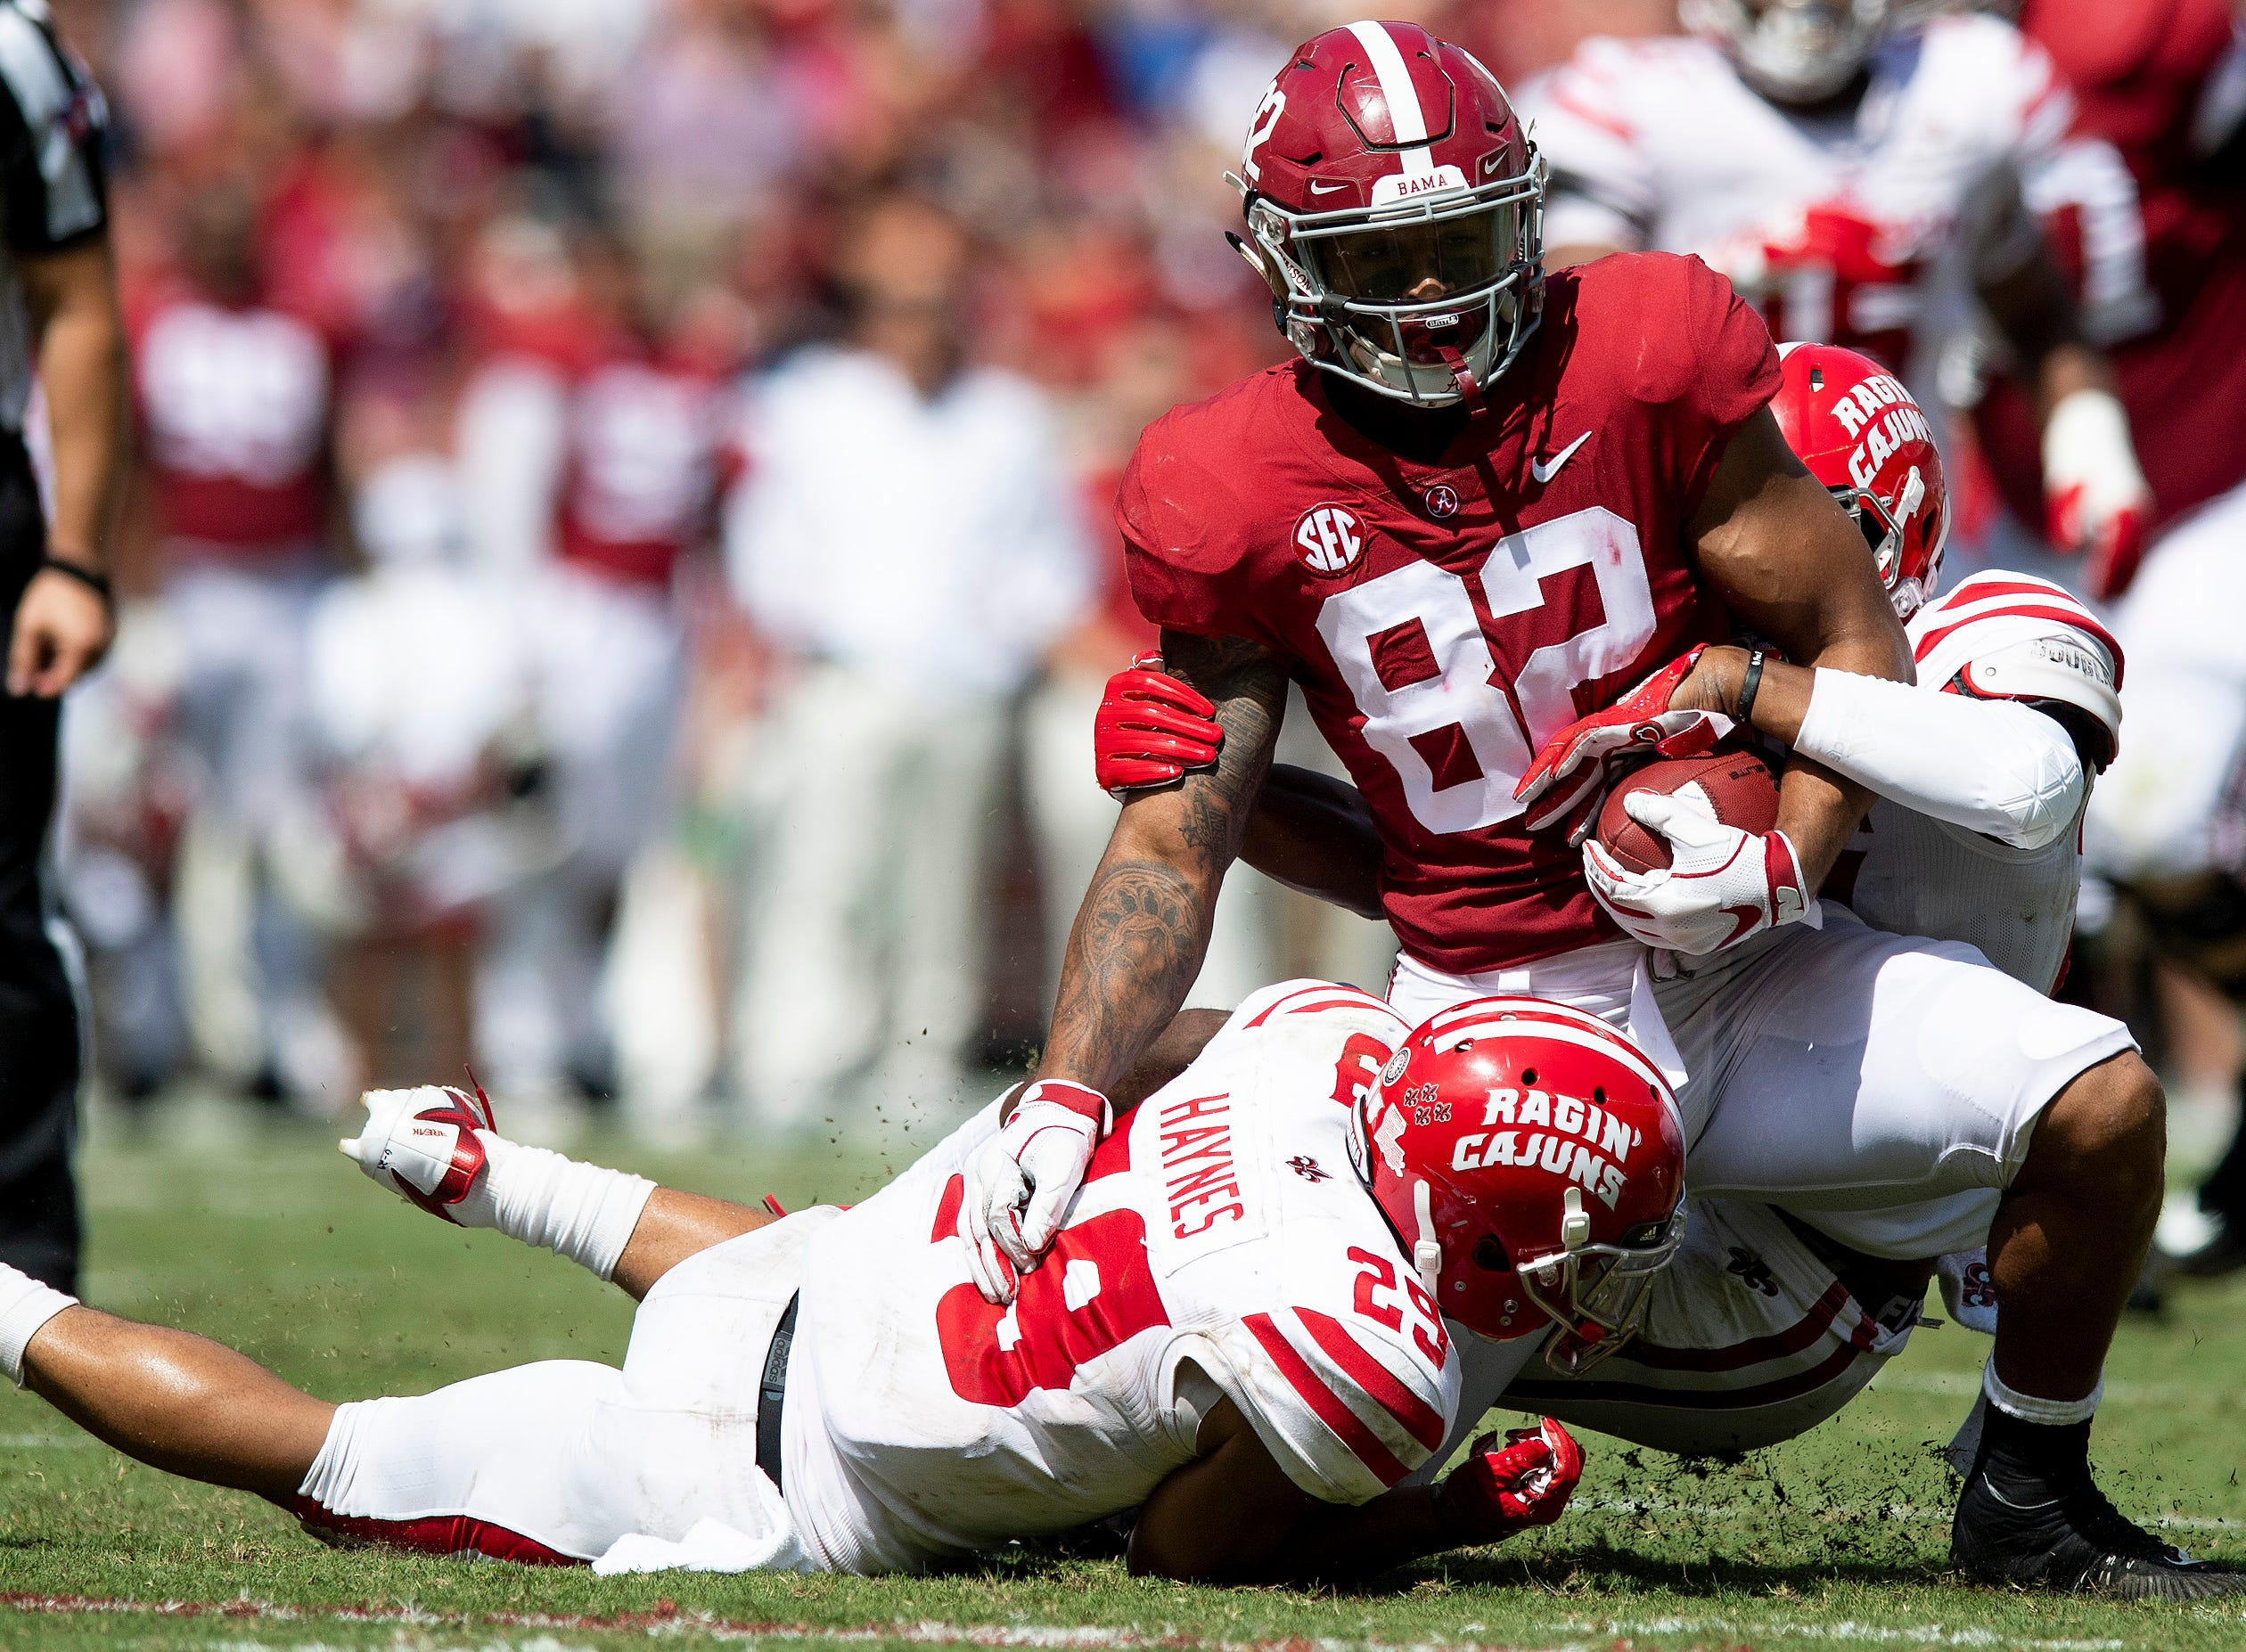 Alabama tight end Irv Smith Jr. (82) is tackled by Louisiana defensive back Koa Haynes (29) in first half action at Bryant-Denny Stadium in Tuscaloosa, Ala., on Saturday September 29, 2018.